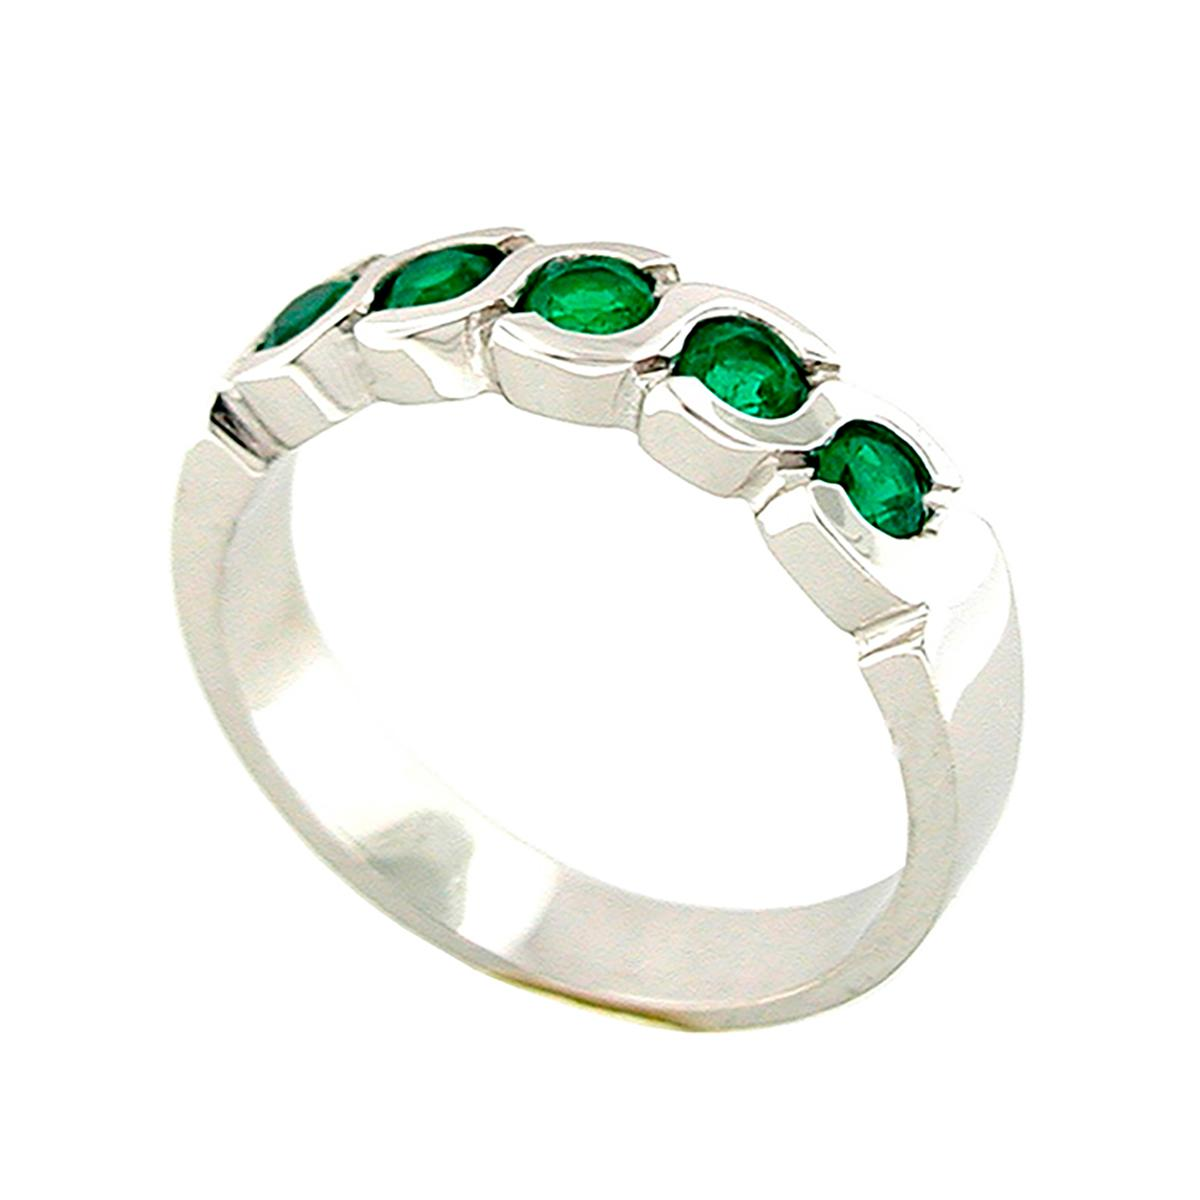 emerald-band-ring-with-round-cut-emeralds-set-in-18k-white-gold-bezel-setting